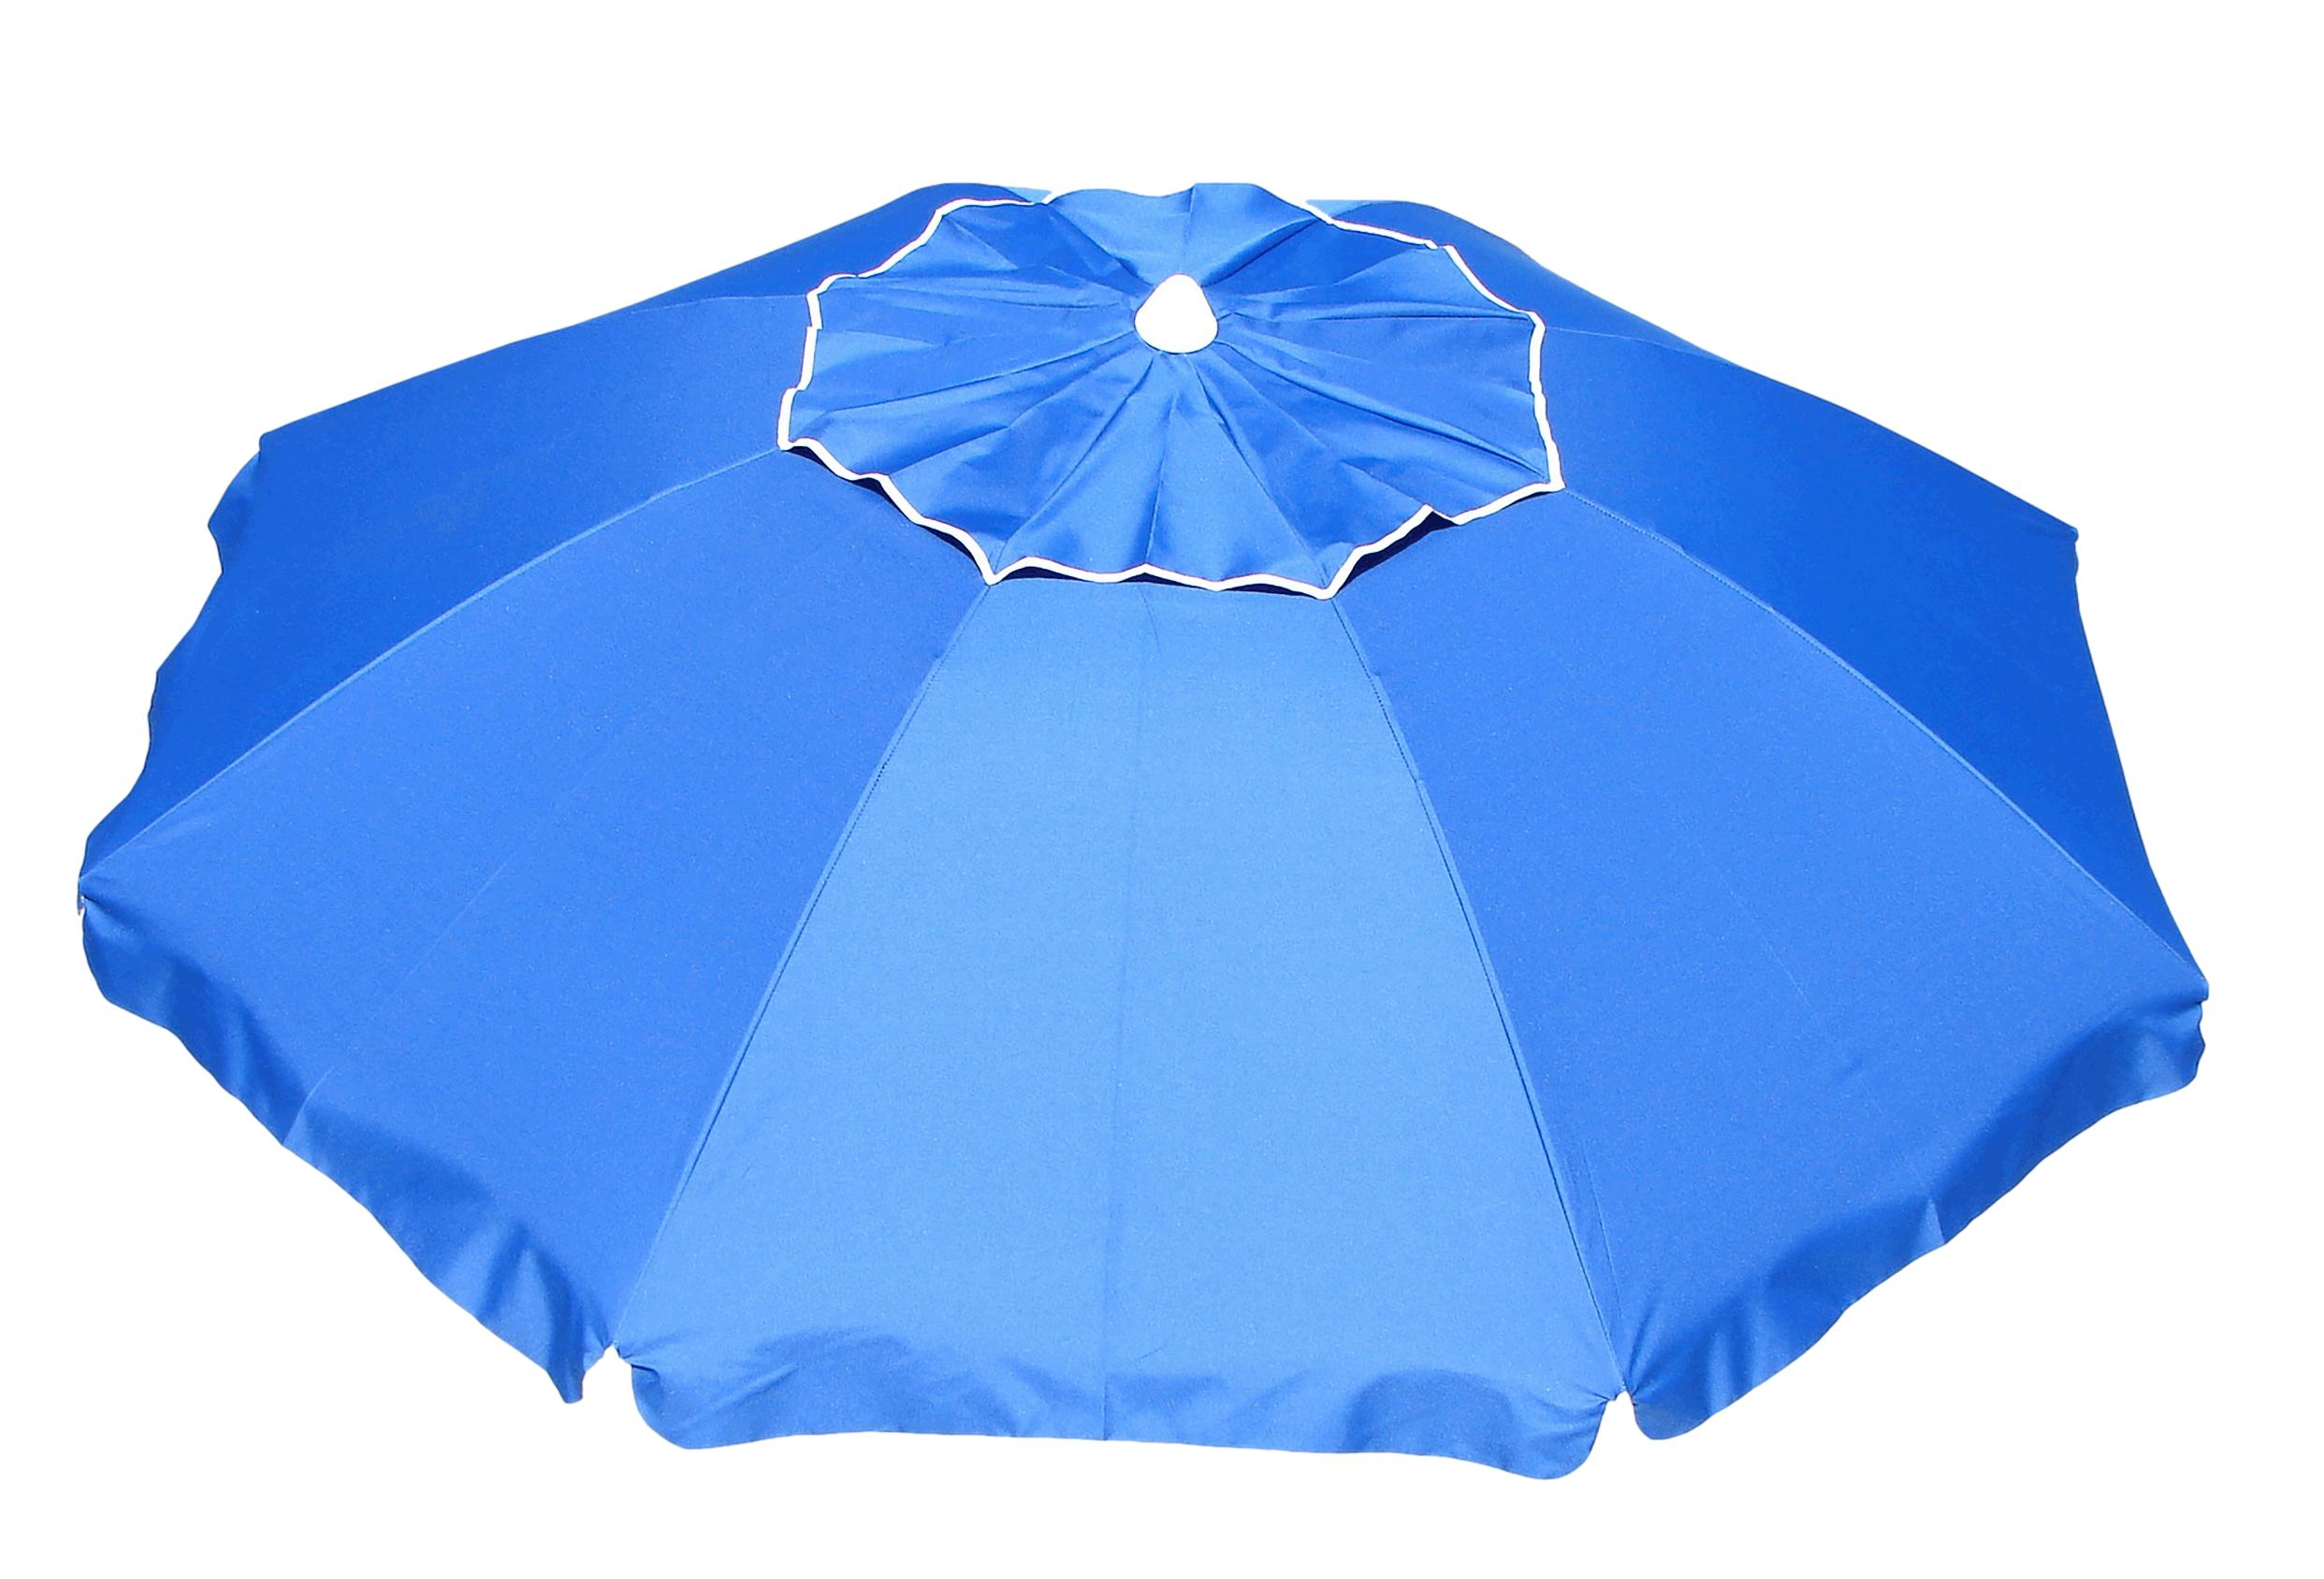 Shelter Pacific Royal Blue Beach Umbrella